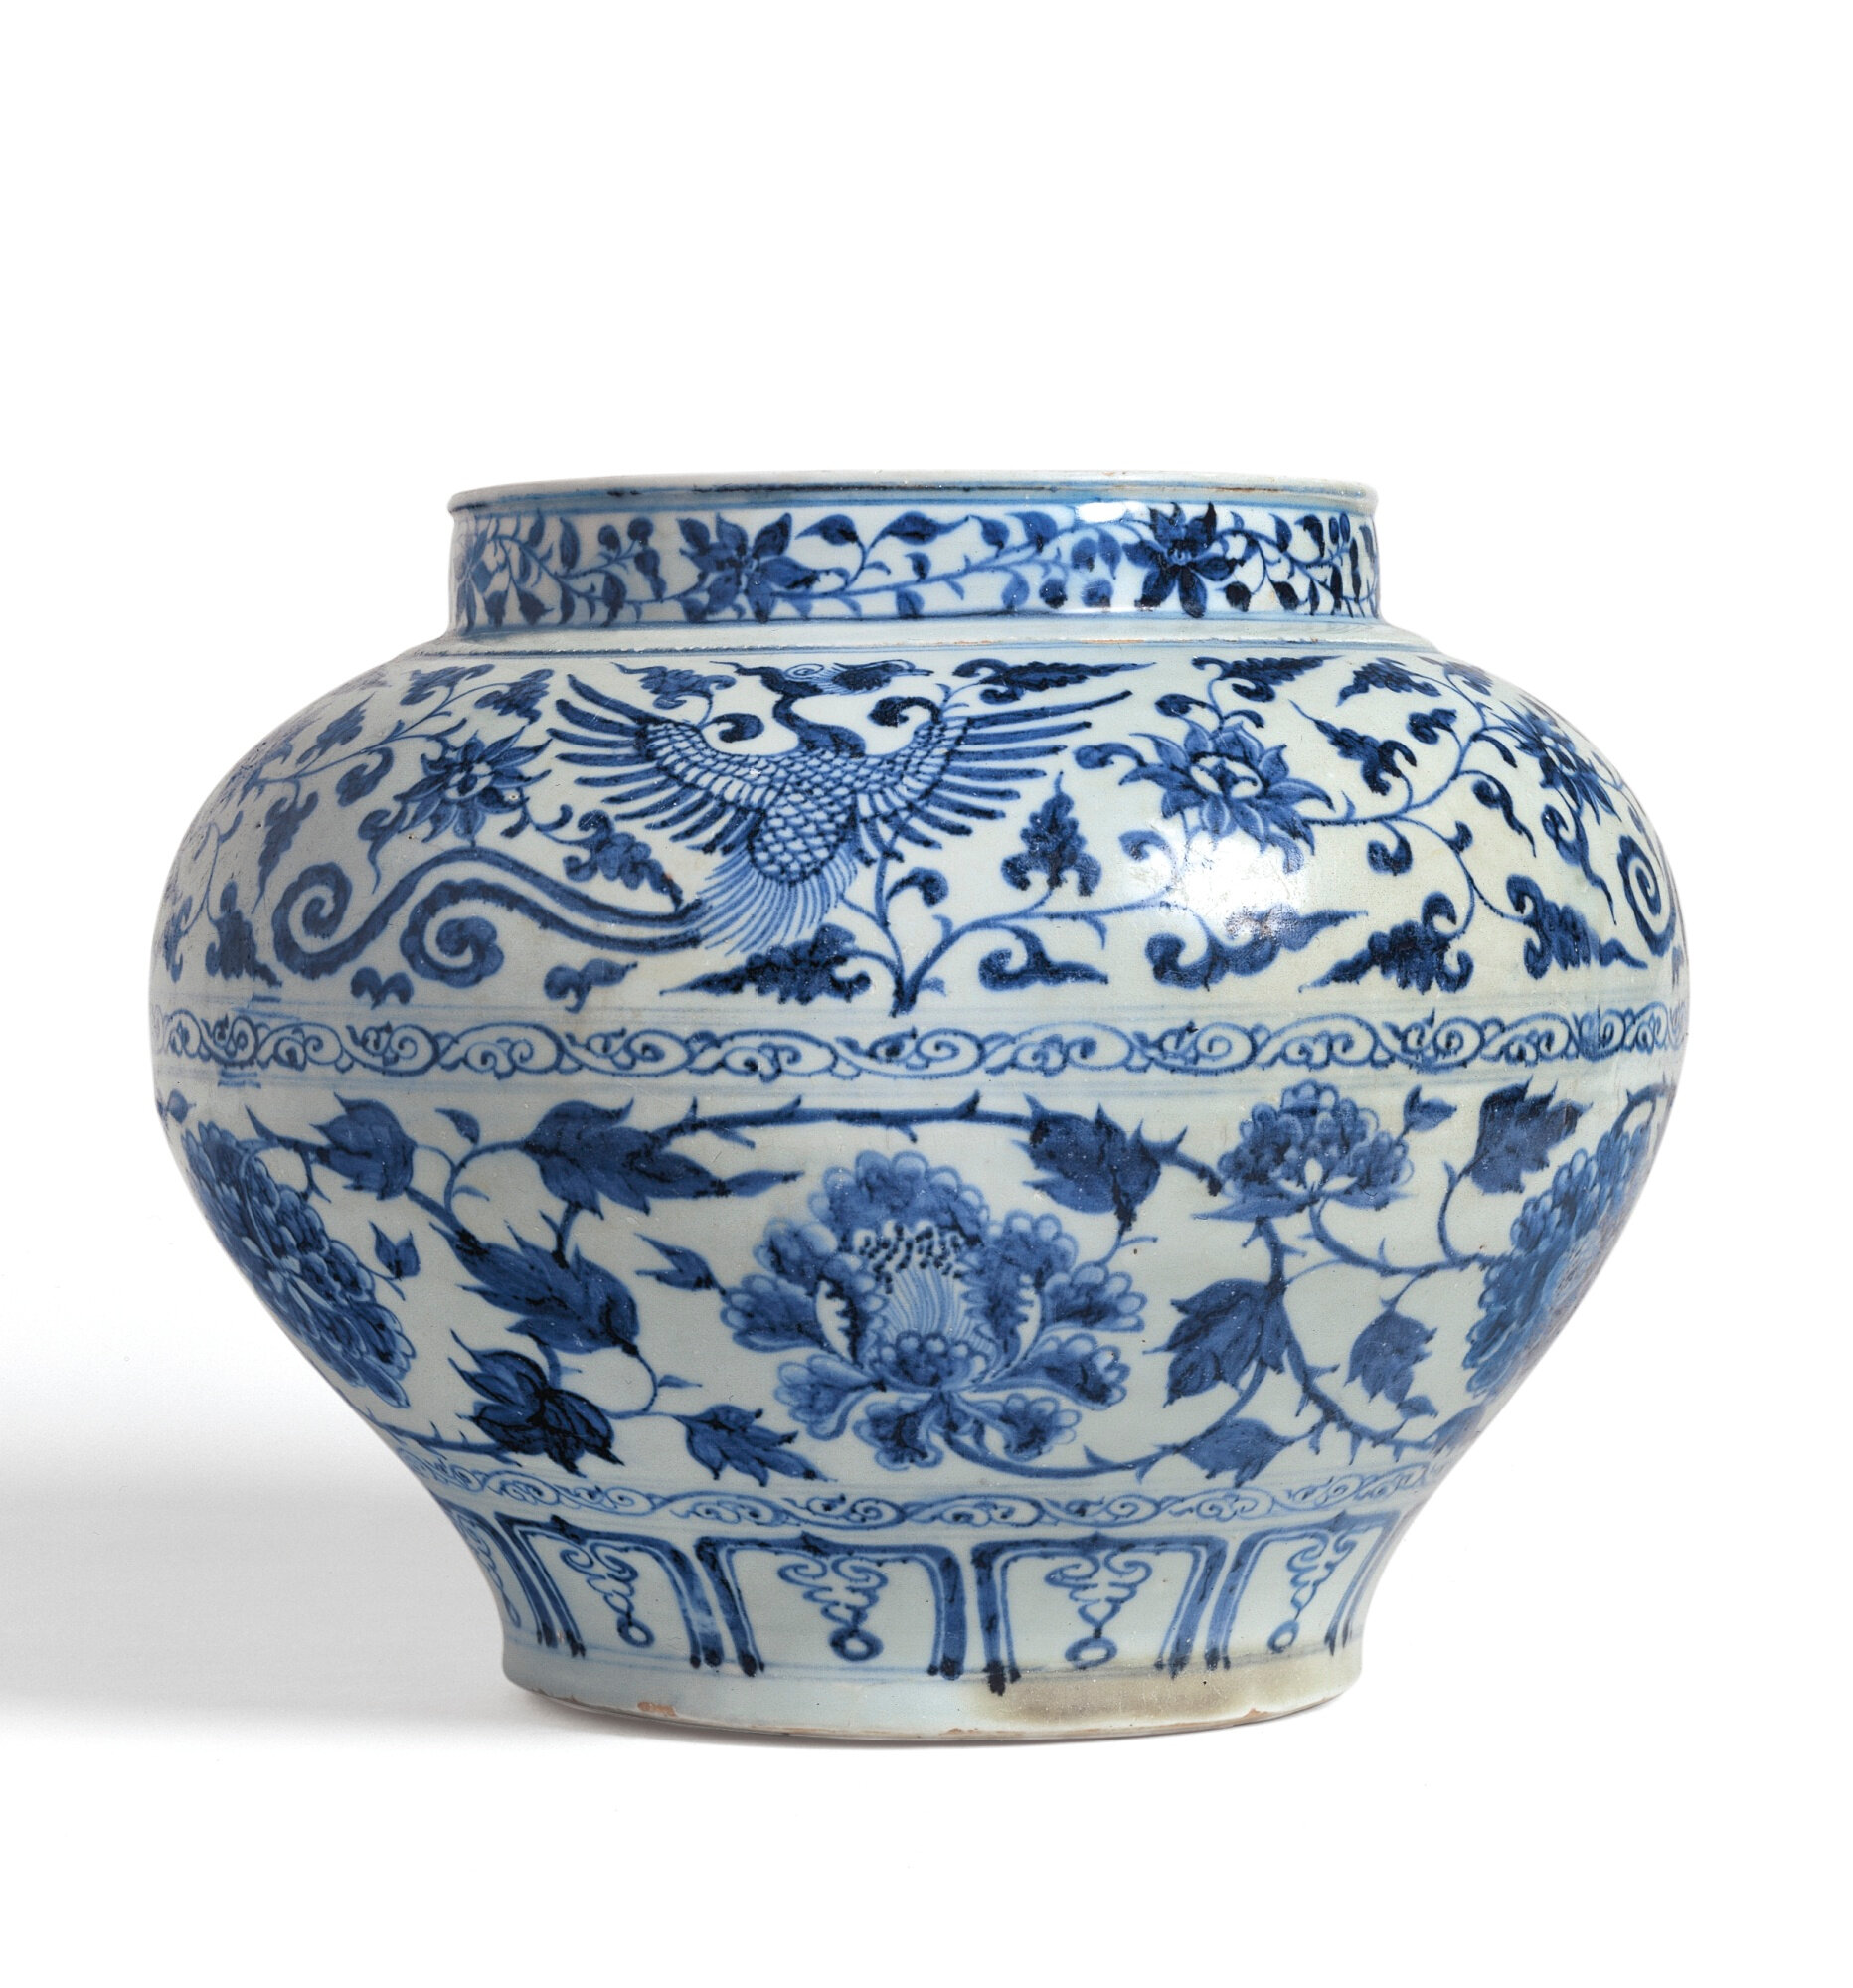 A rare blue and white 'Phoenix and Poeny' jar, Guan, Yuan dynasty, 14th Century